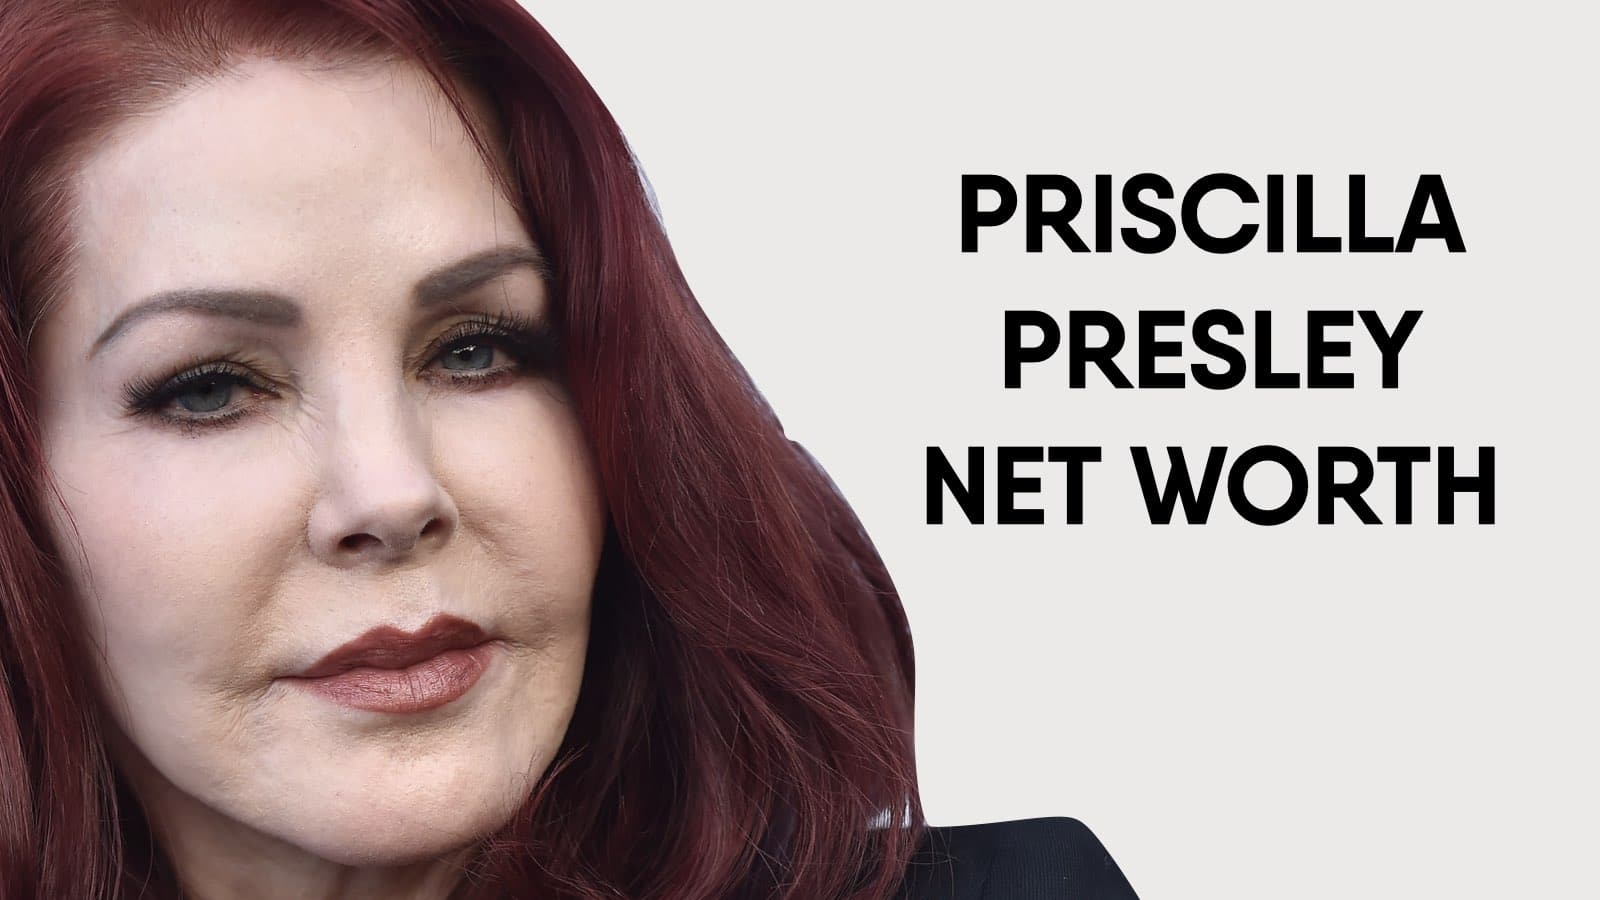 Priscilla Presley Net Worth And Earnings In 2020